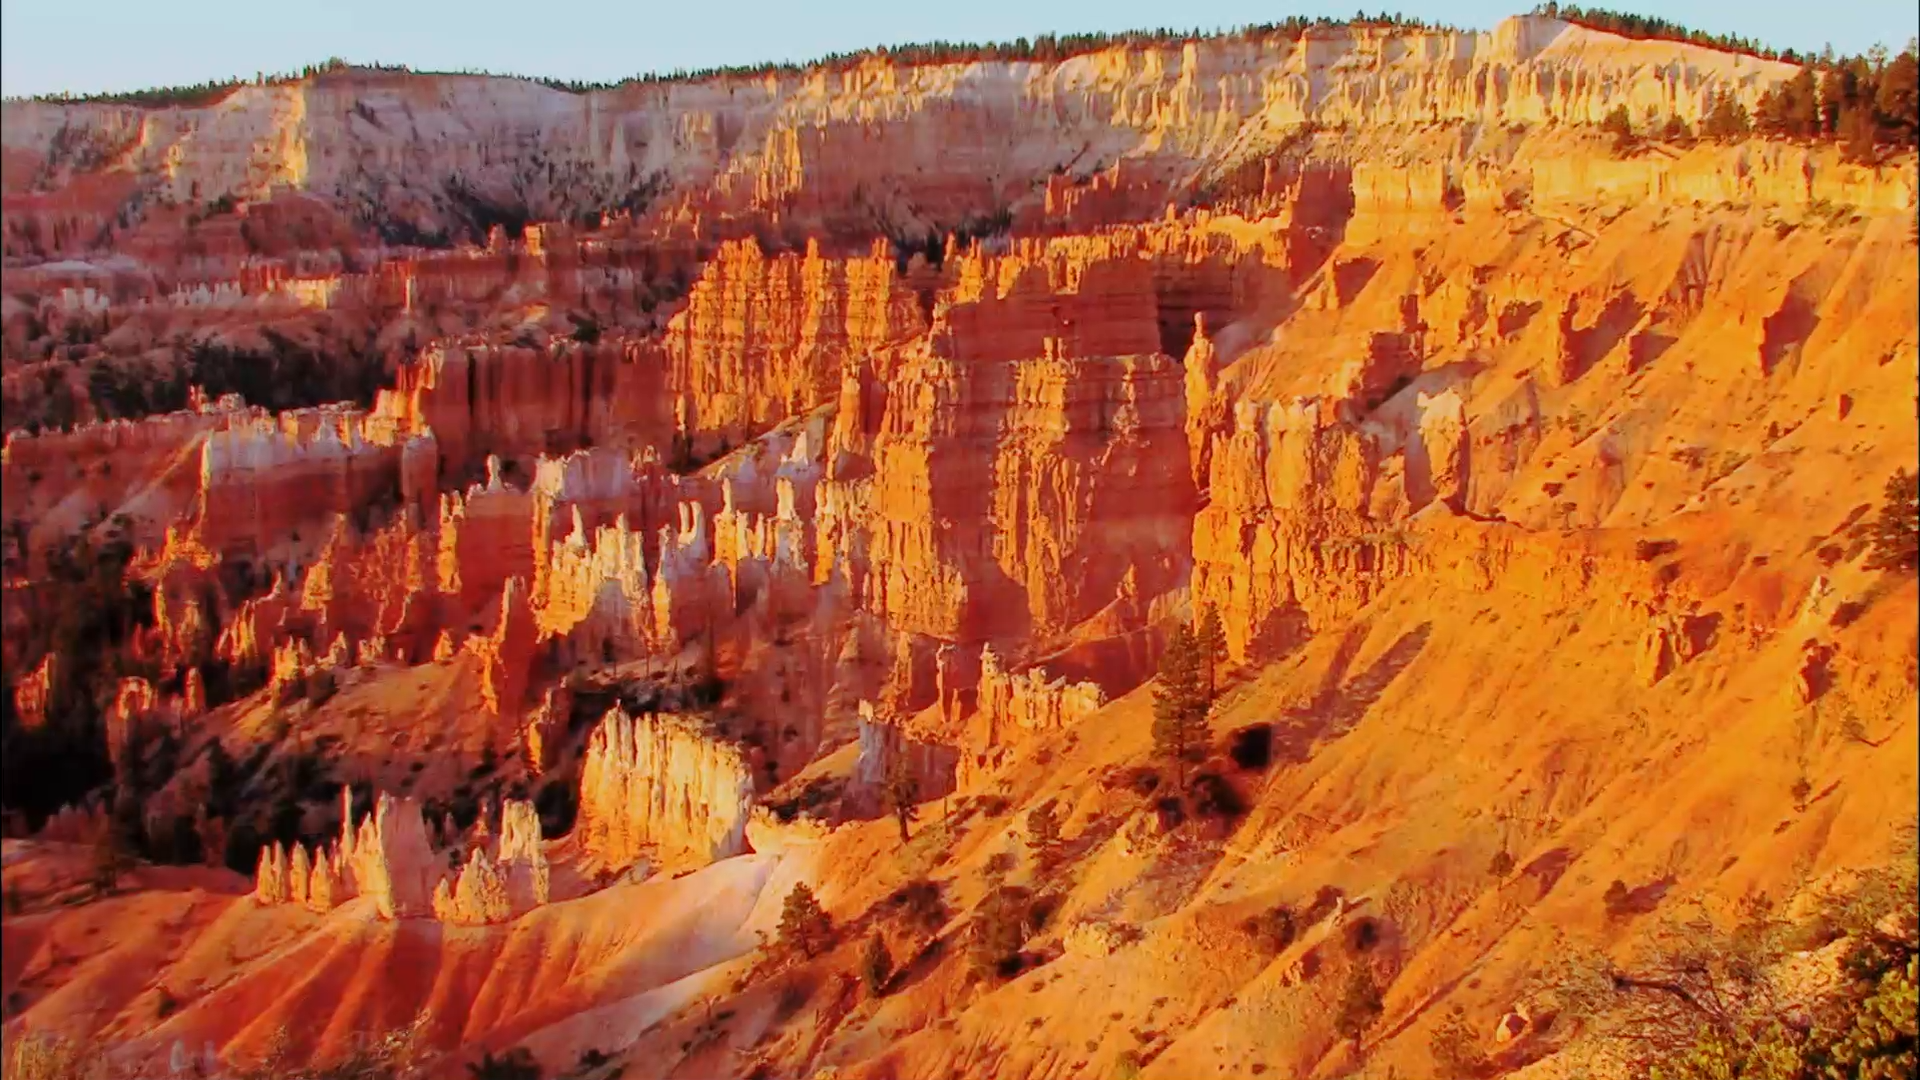 Escape To Another World At Bryce Canyon National Park